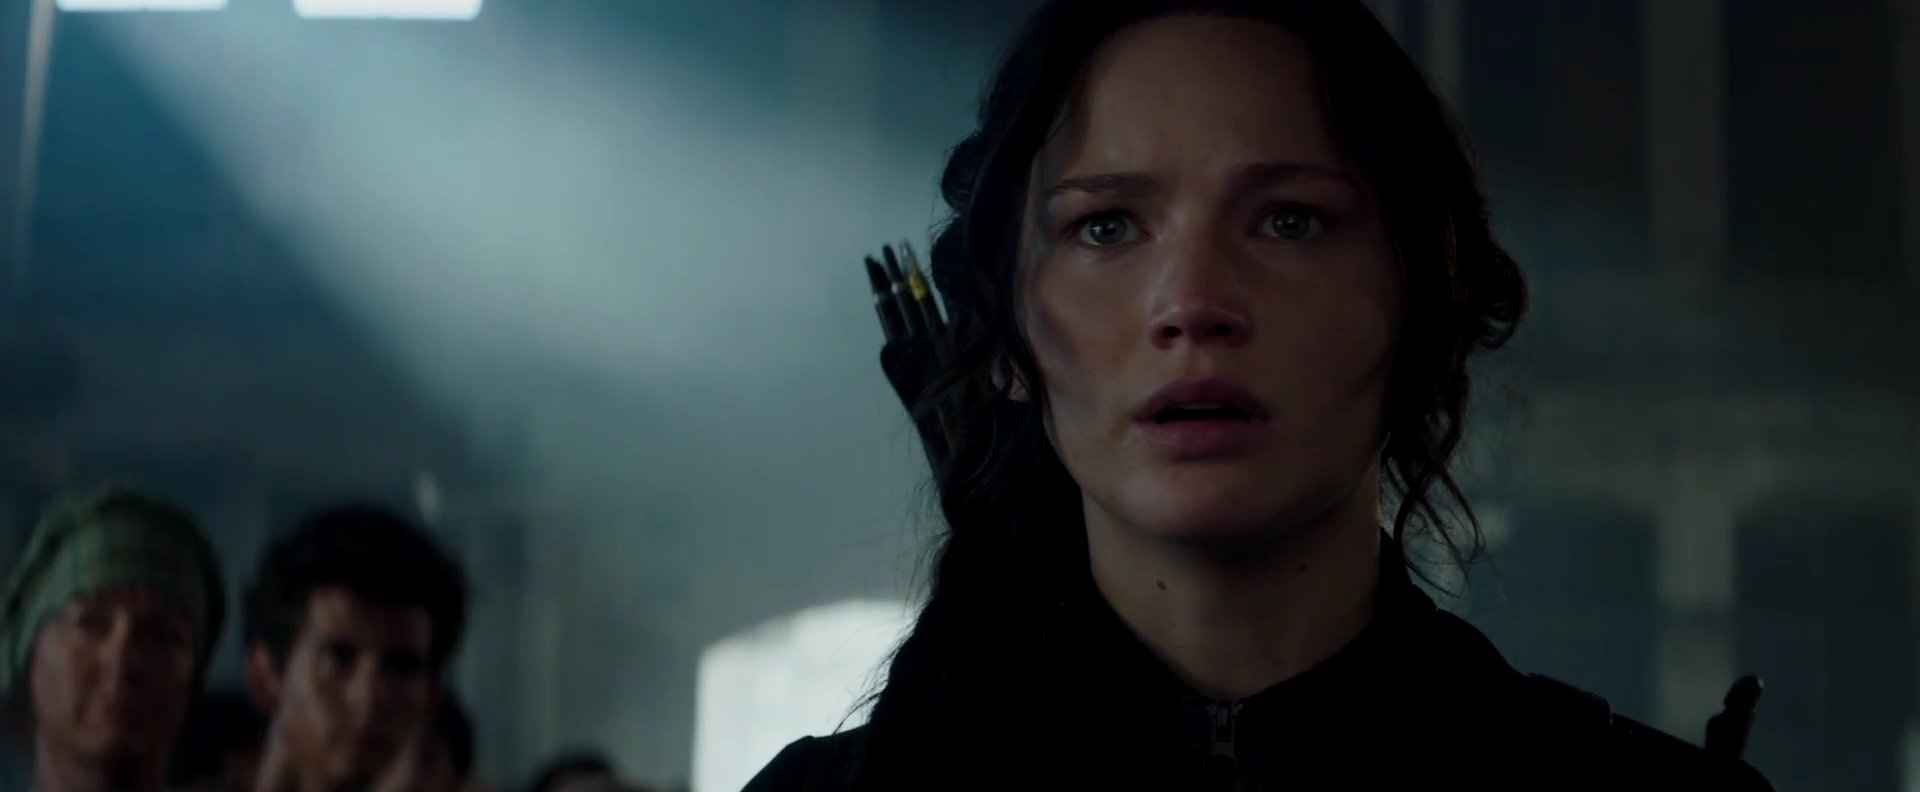 Mockingjay Part 1 – Our Leader the Mockingjay, Katniss